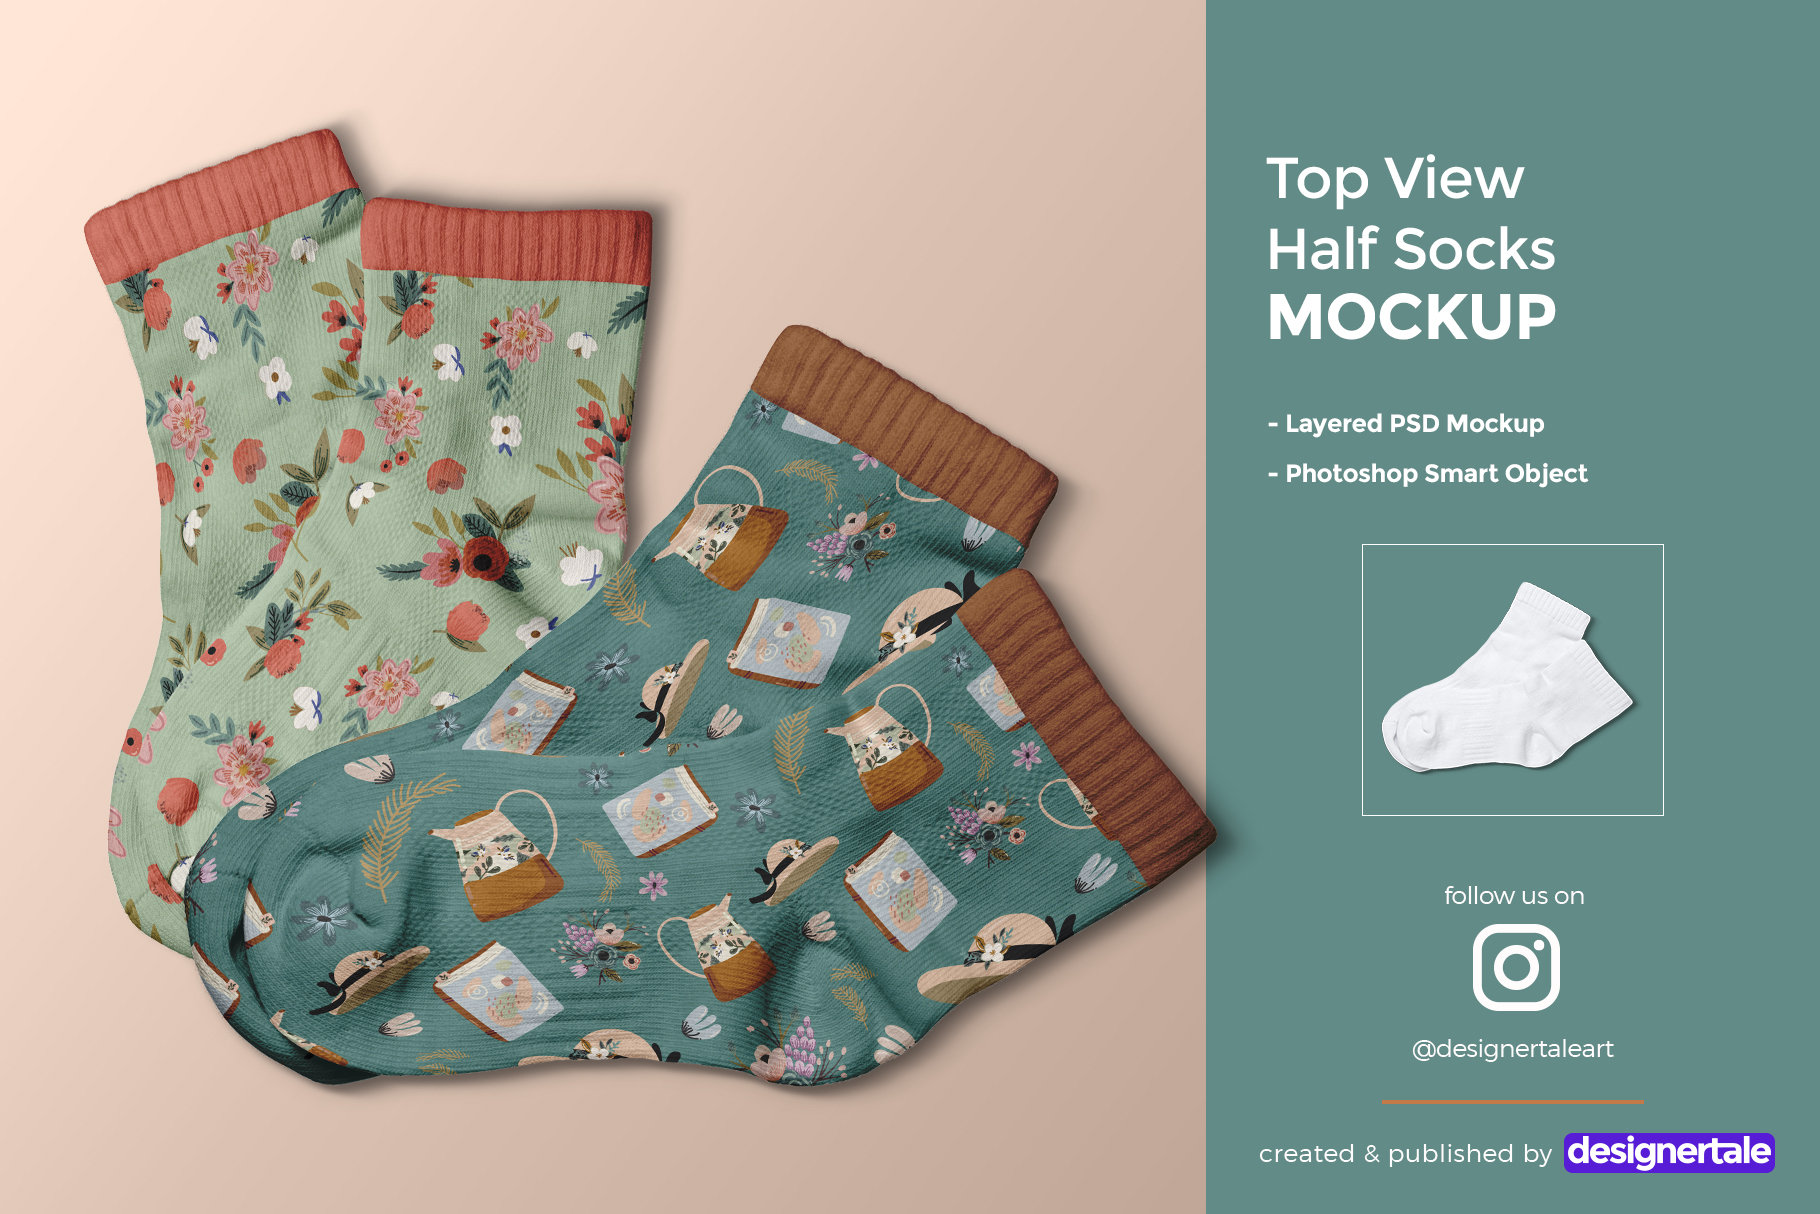 Top View Half Socks Mockup